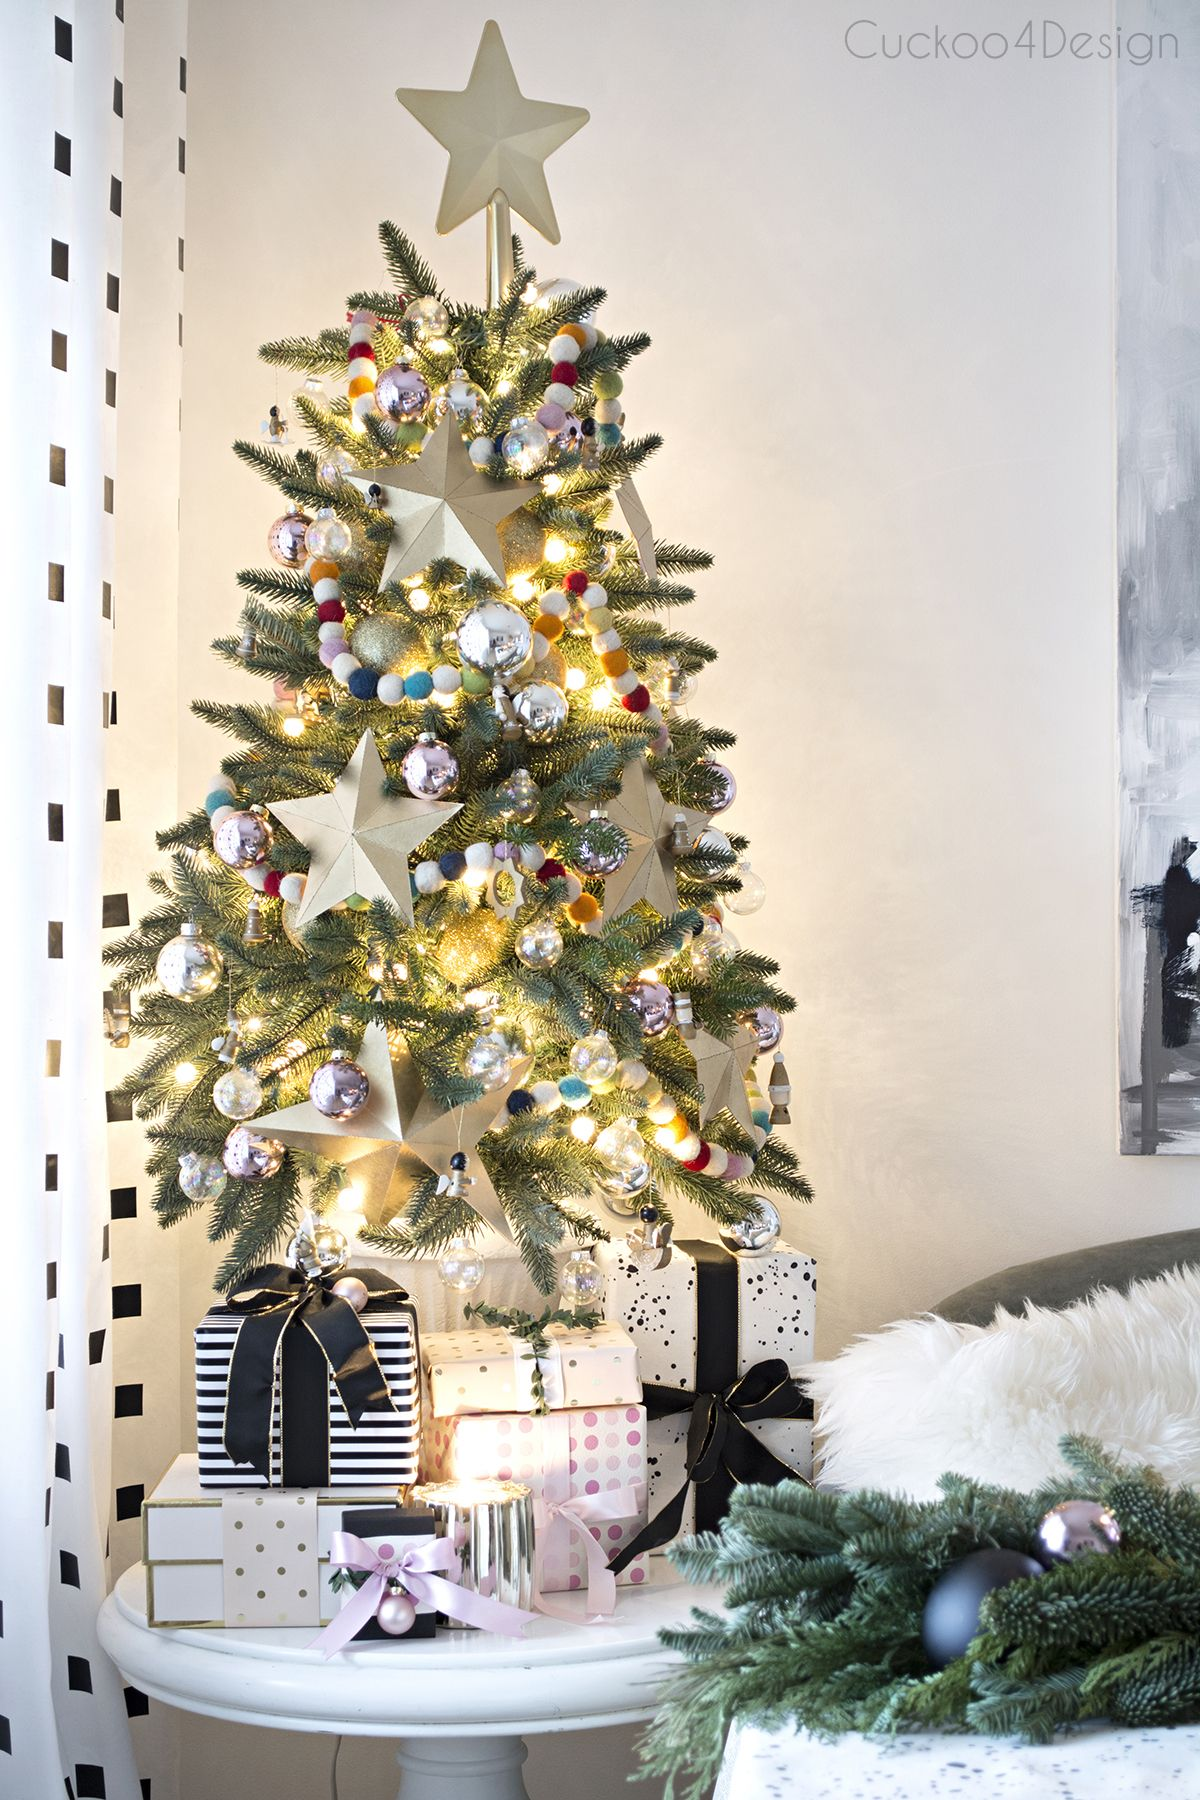 Better Homes And Gardens Christmas Ideas Home Tour Cuckoo4design